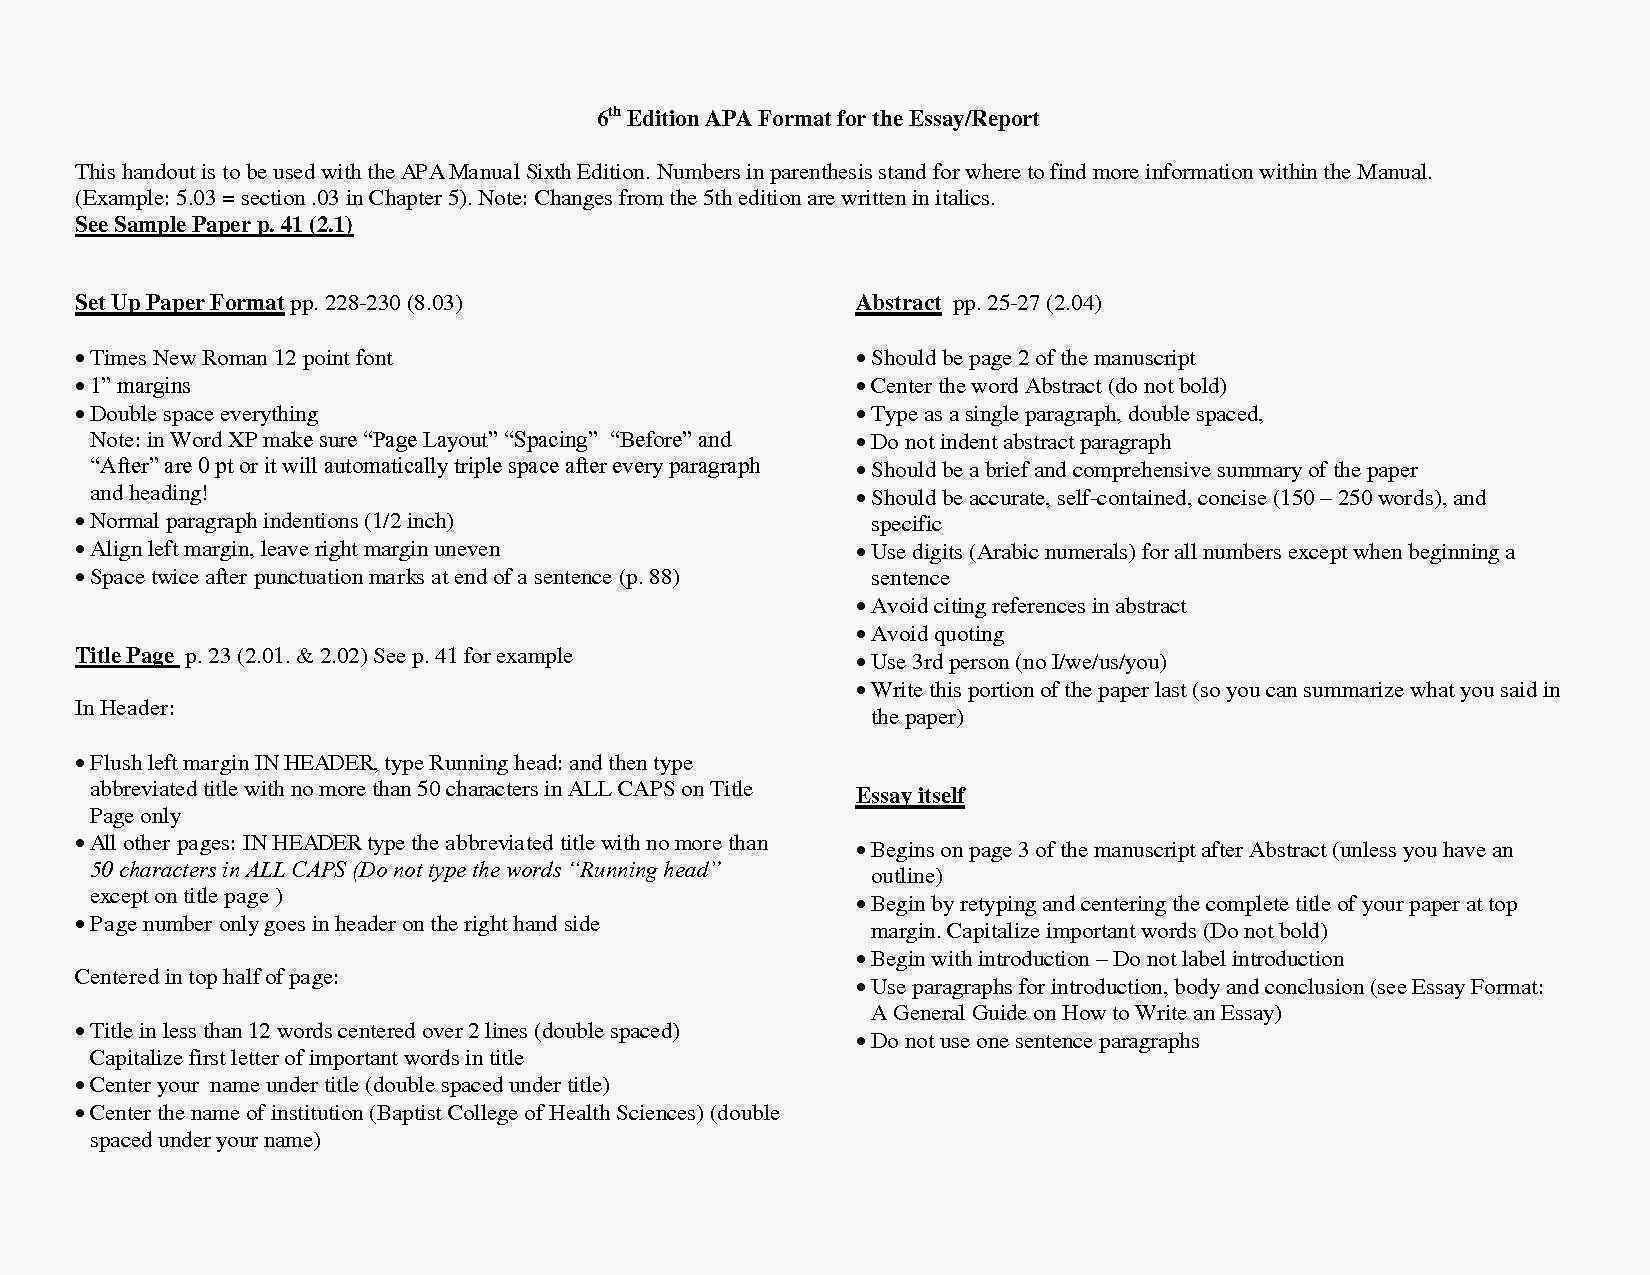 The Marvelou Research Paper Apa Heading In Elegant Sample Proposal Within Word Template 6th Edition Pic Below Essay Format How To Cite A Book Chapter 7th